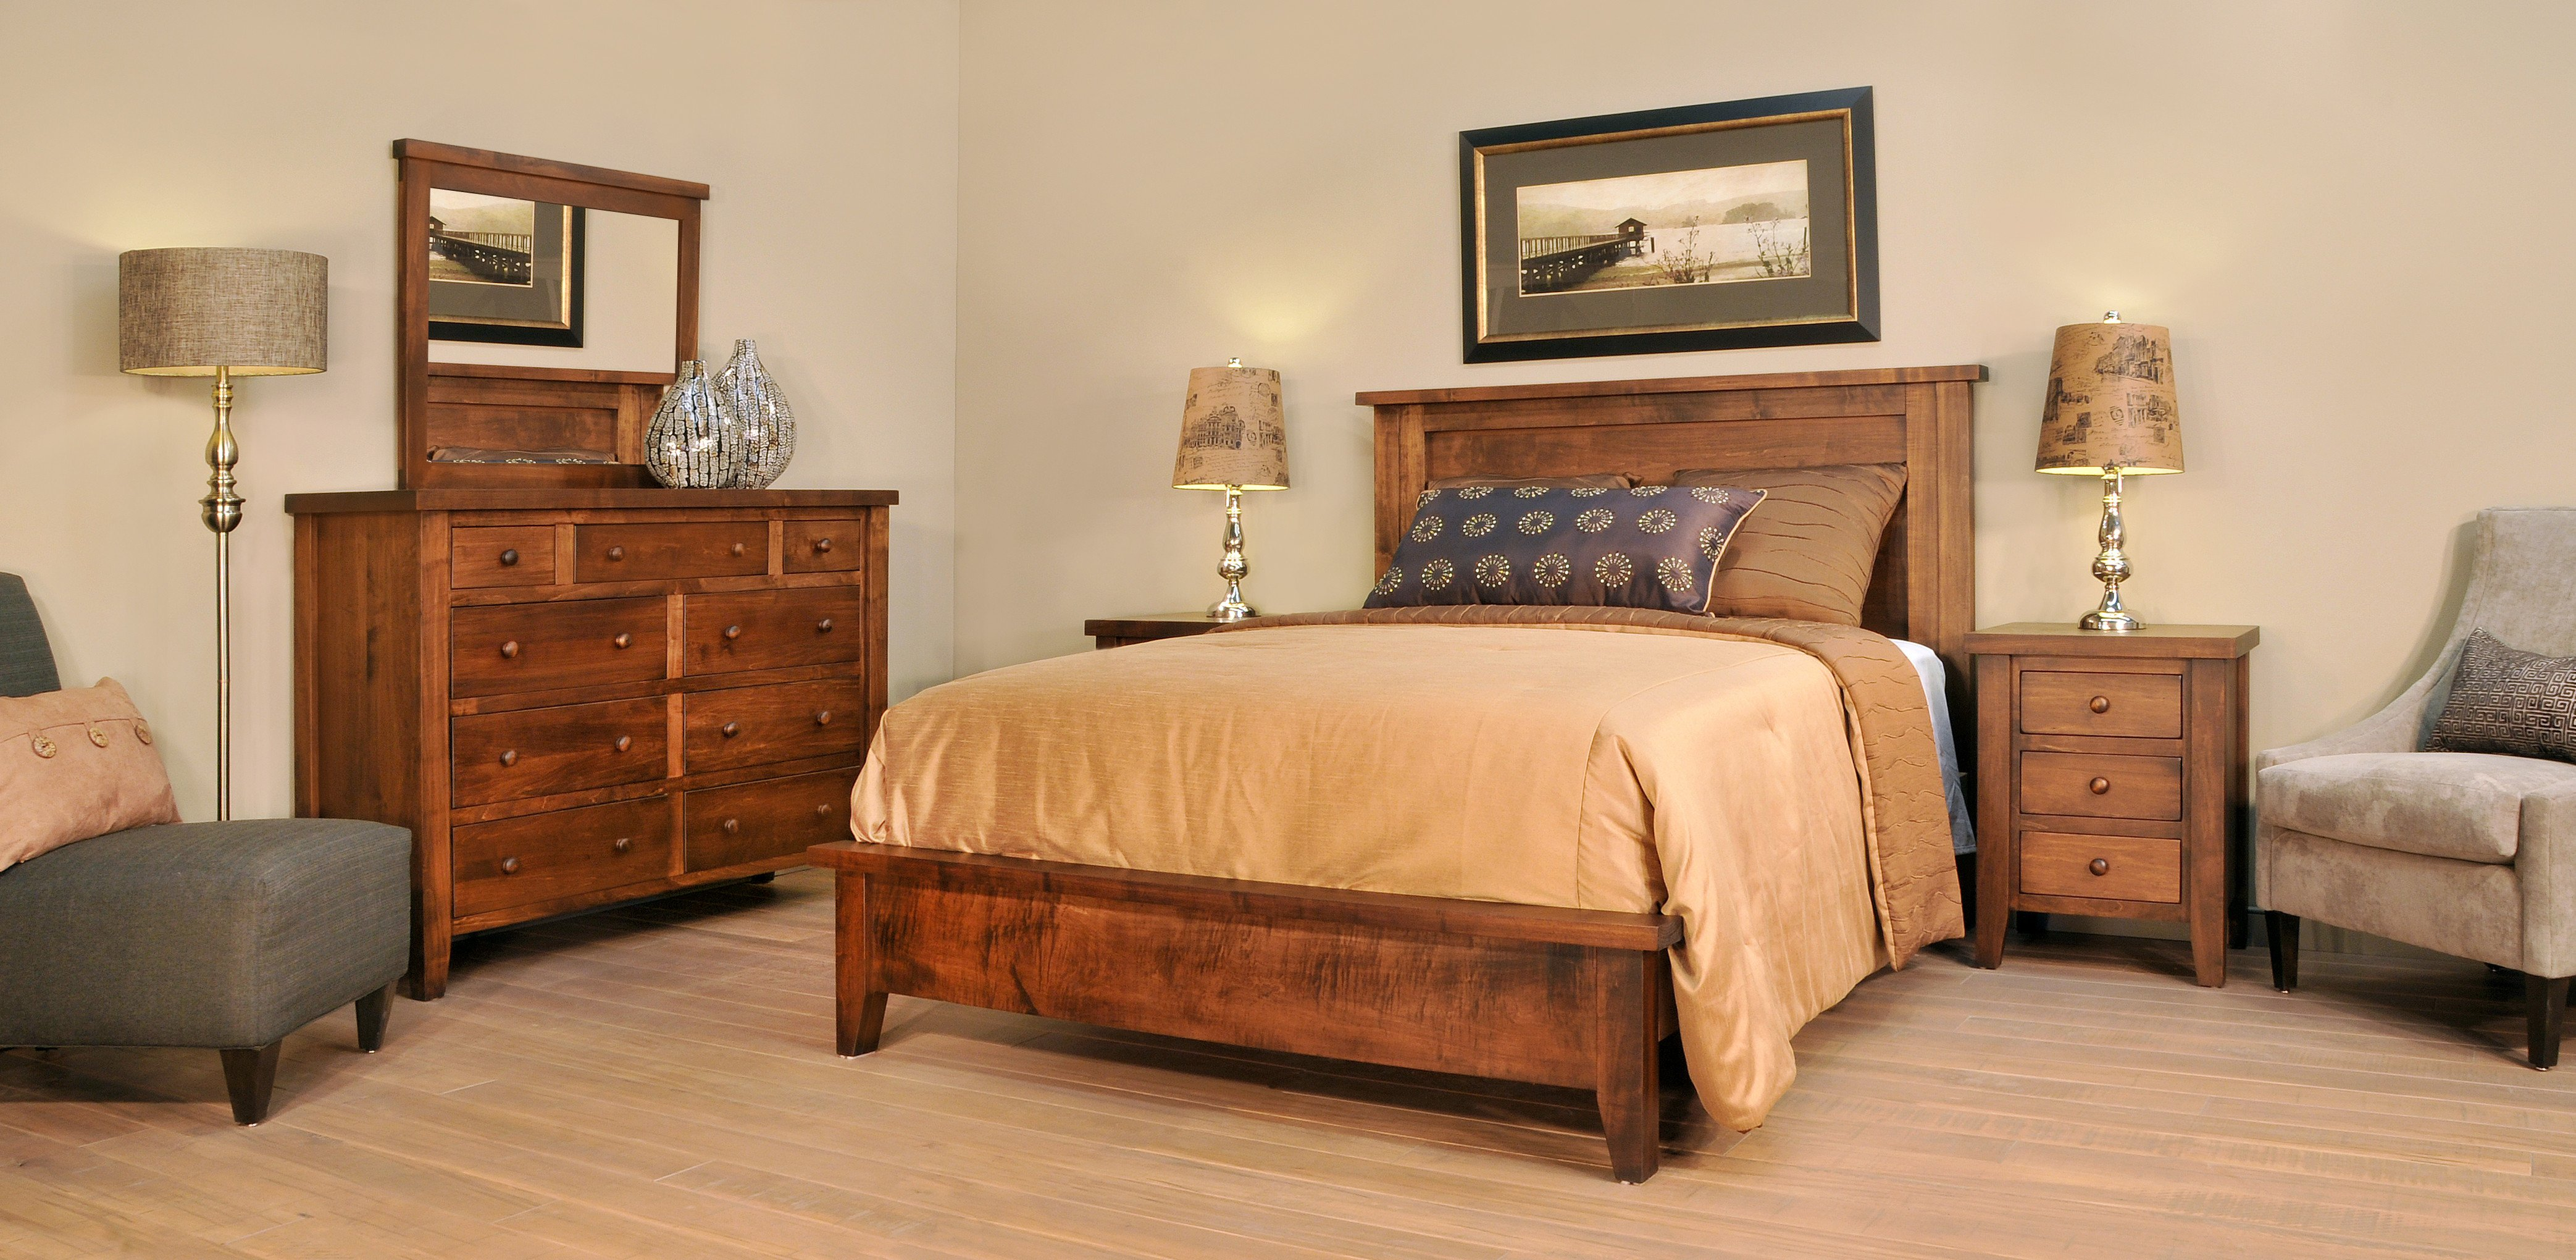 20 unique wooden bedroom furniture set | findzhome